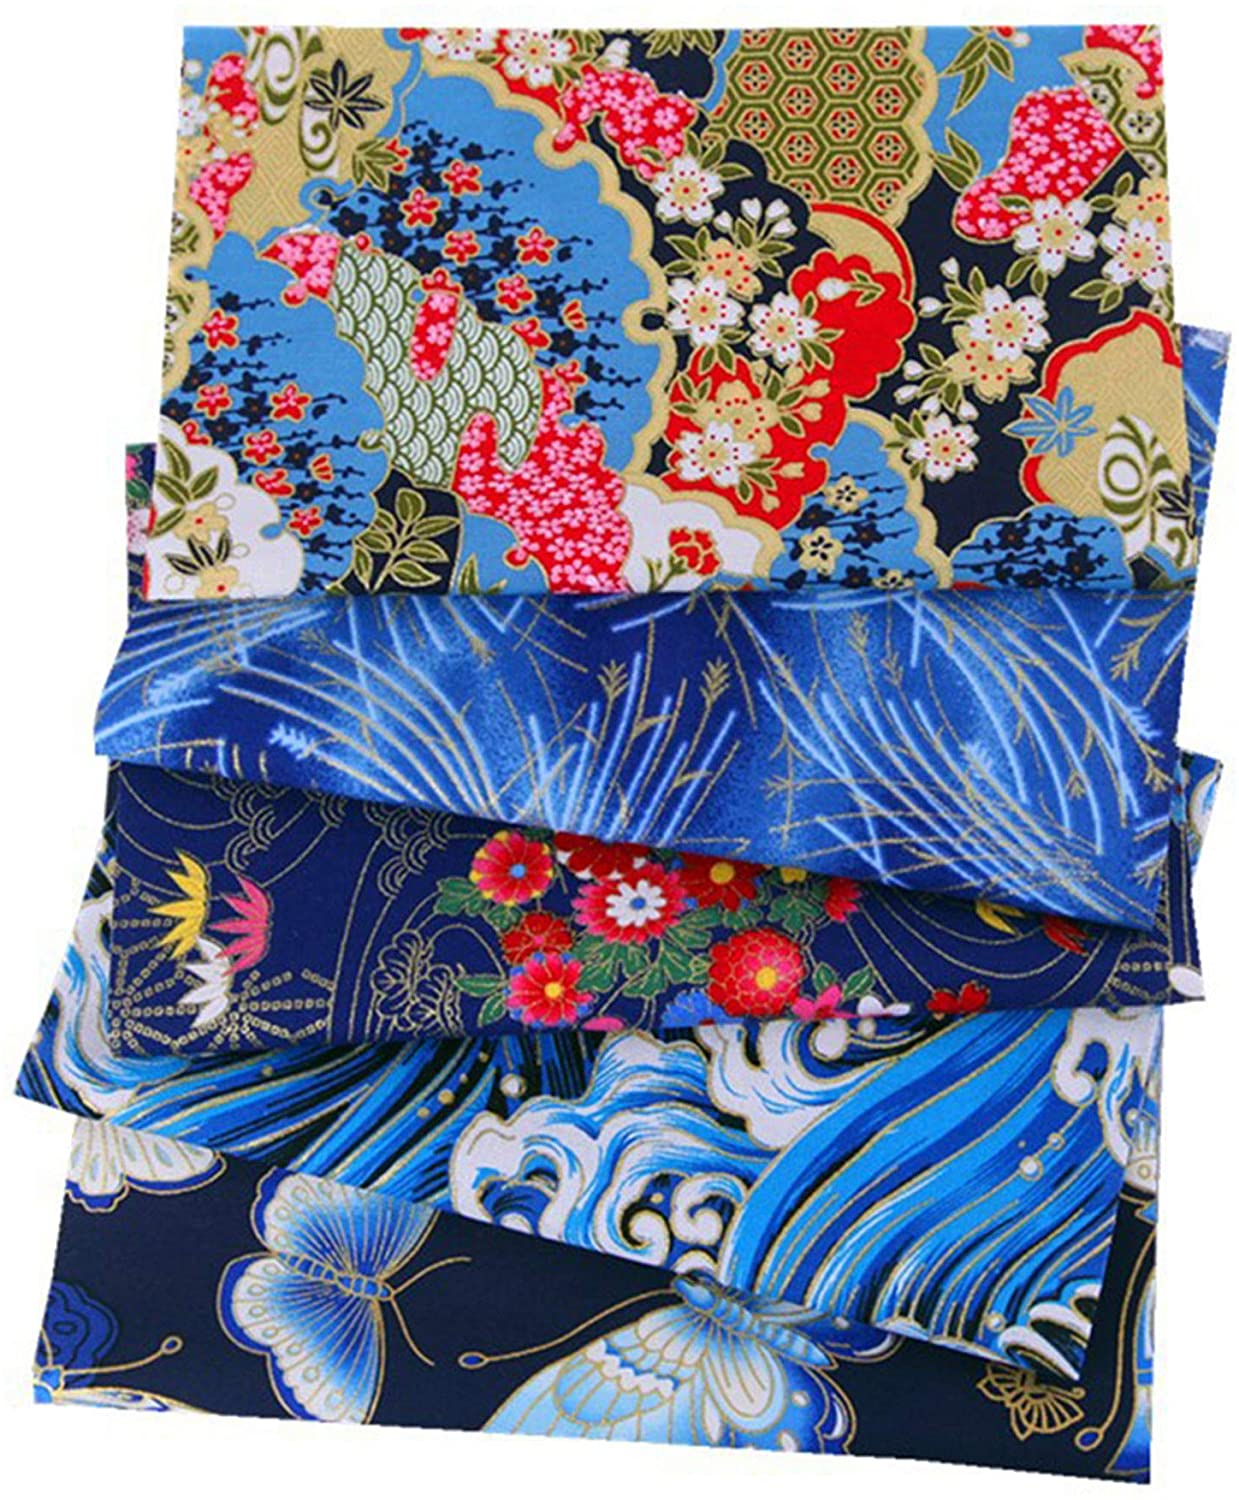 5 PCS Cotton Fabric Craft Quilting Sewing Fabric Patchwork 20cm x 25cm Cute Japanese Style Mixed Pattern Cotton Fabric,for DIY Patchwork Precut Sewing